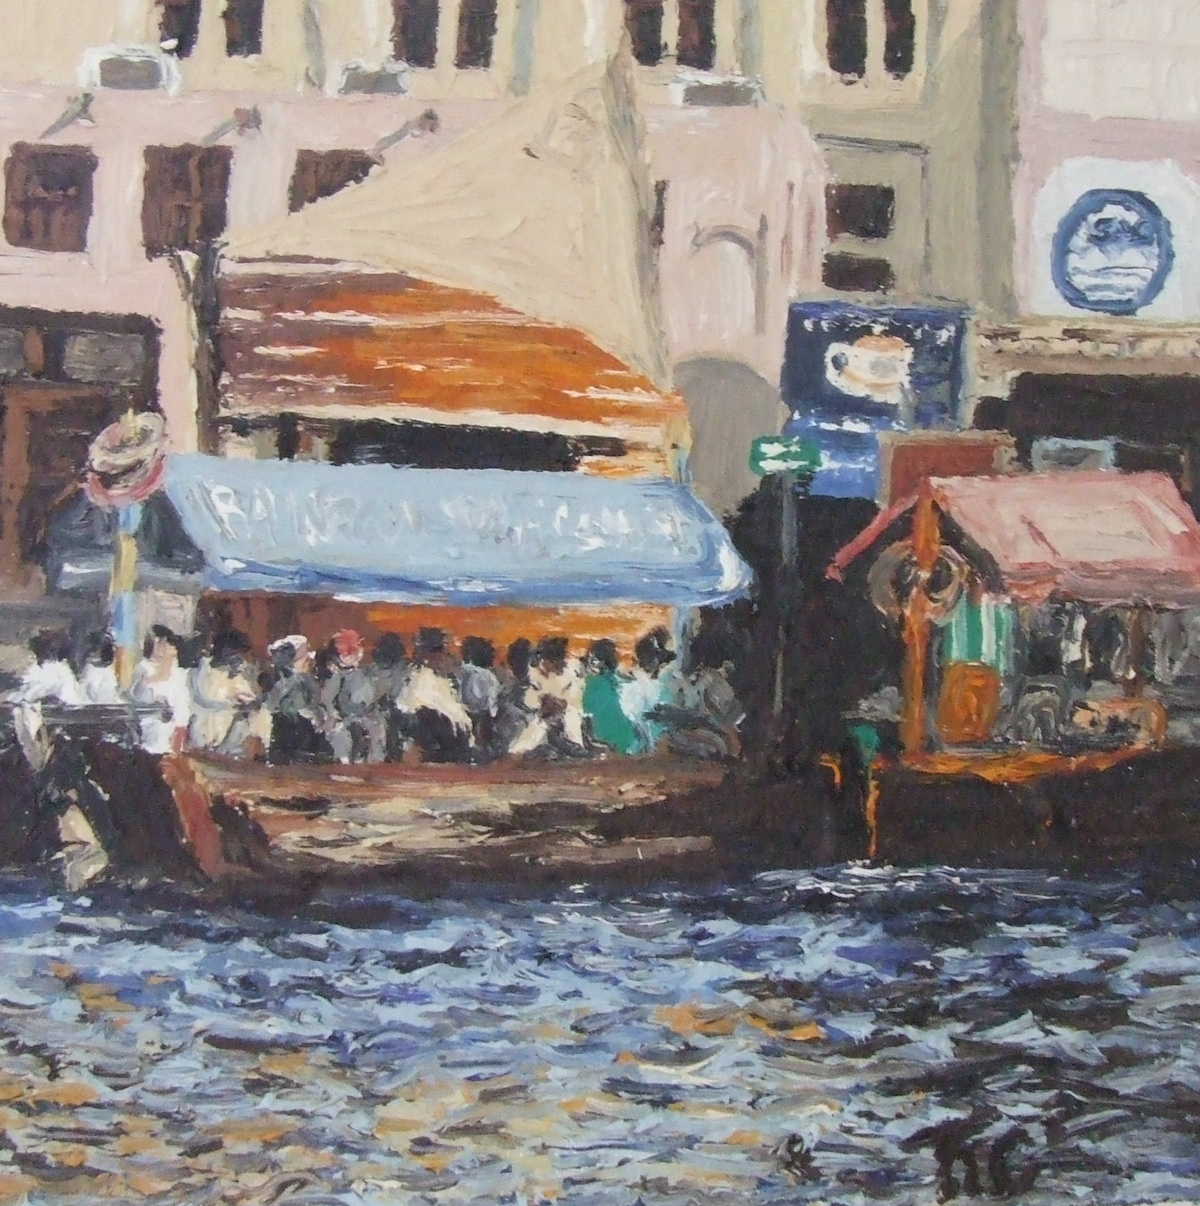 Burdubai abra station Cunningham oil on board 20 x 20cm